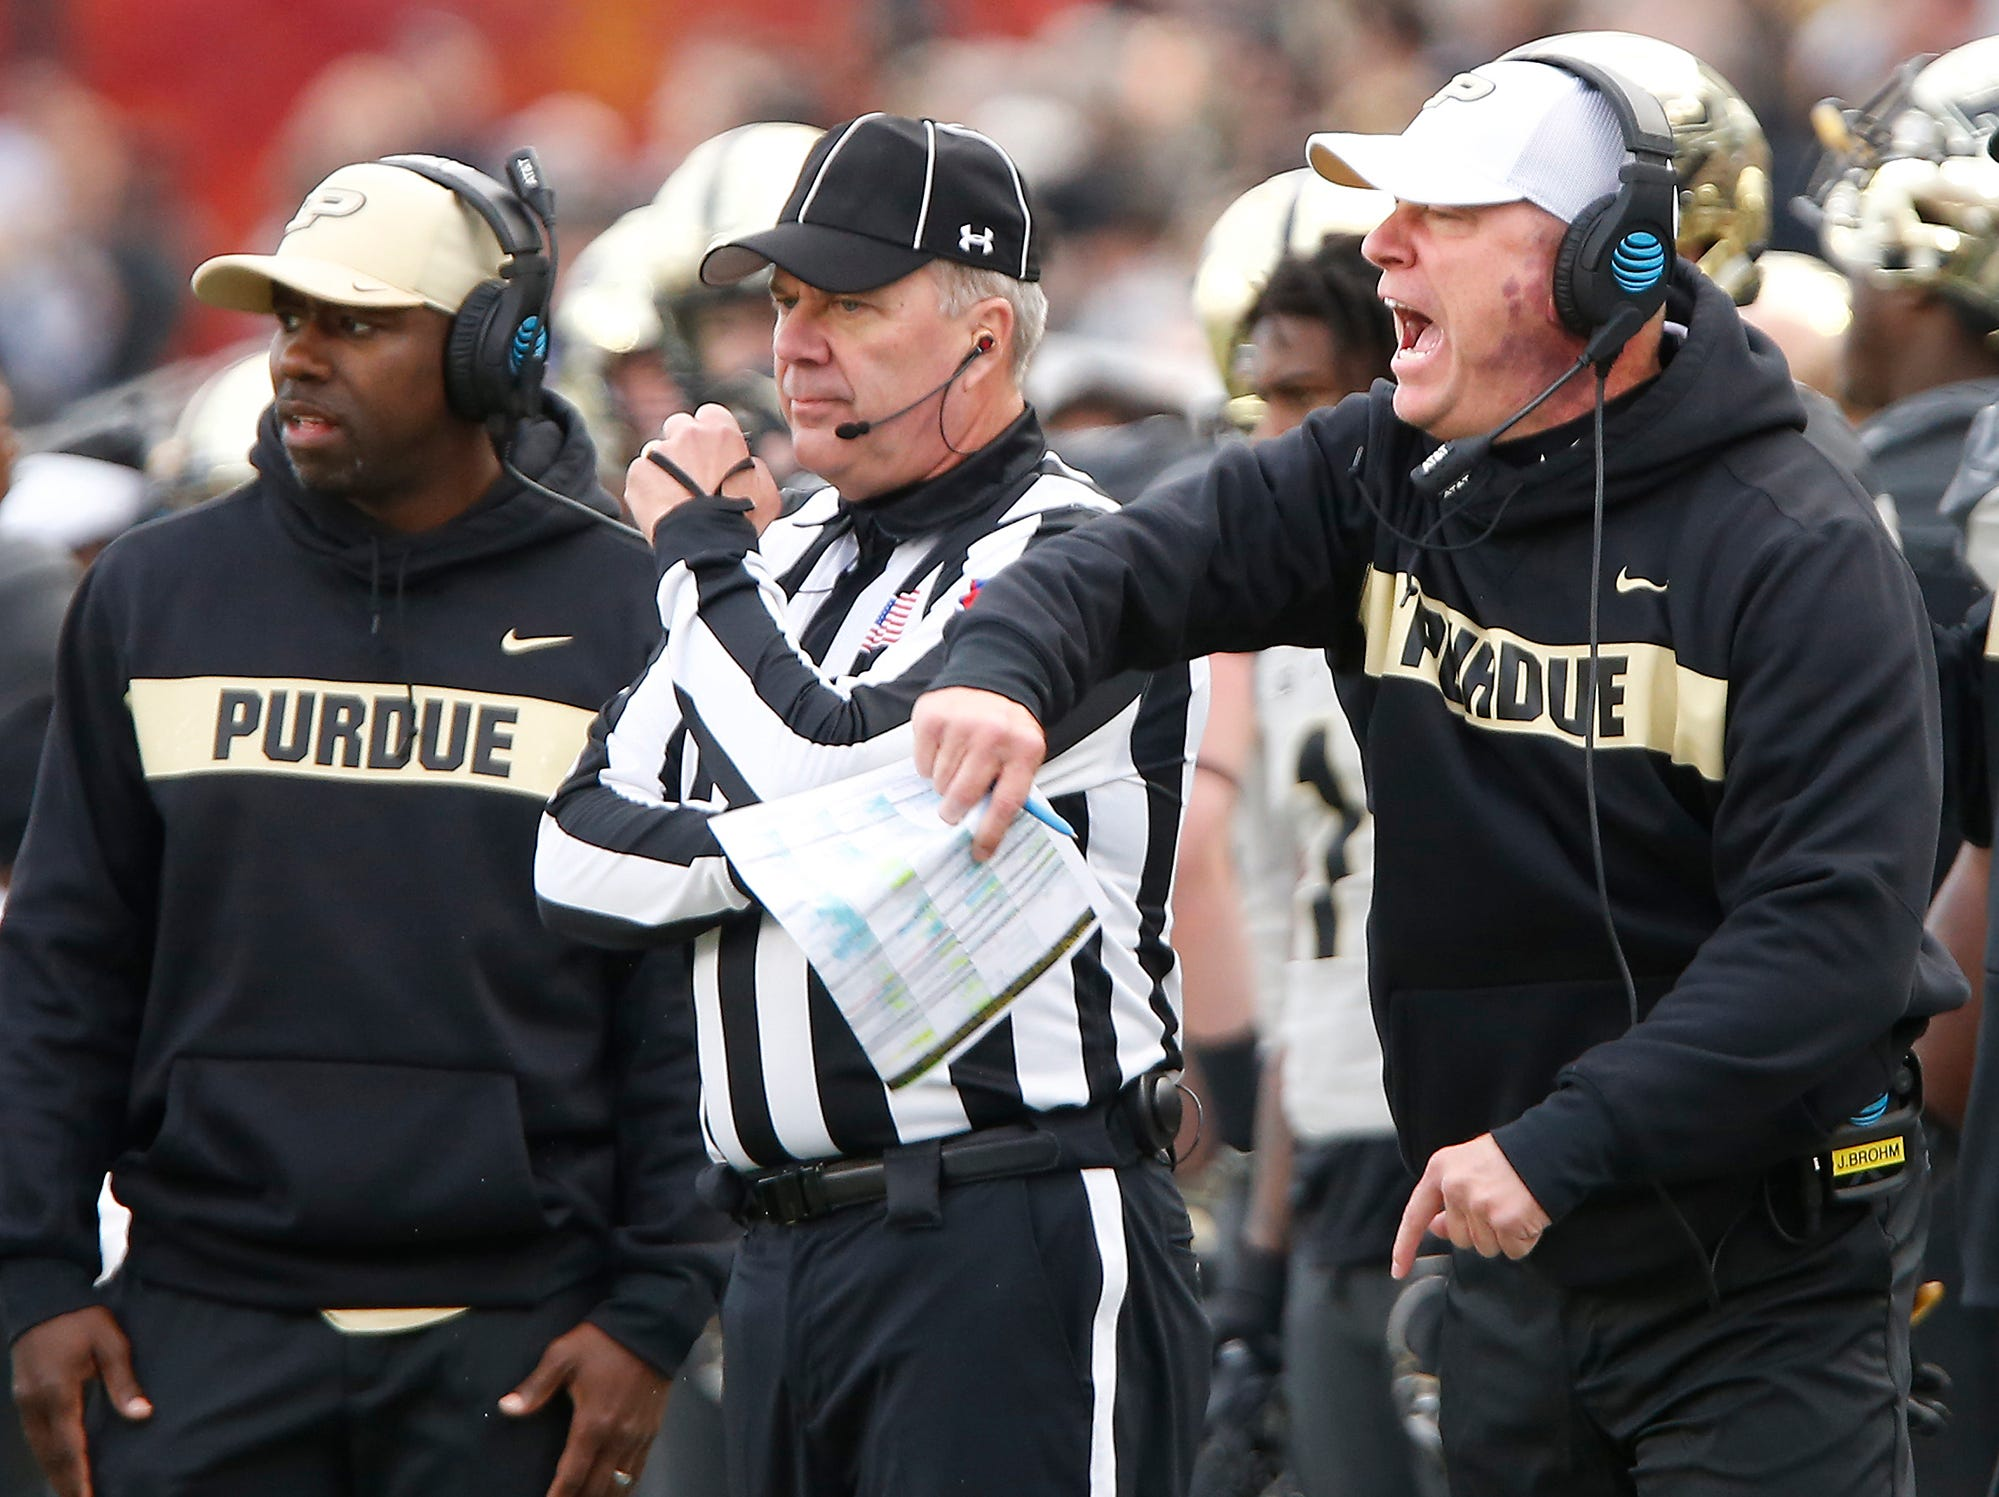 Purdue head coach Jeff Brohm shouts at the officials after the Boilermakers were whistled for a penalty during a punt to Iowa late in the first half Saturday, November 3, 2018, at Ross-Ade Stadium. Purdue defeated Iowa 38-36.